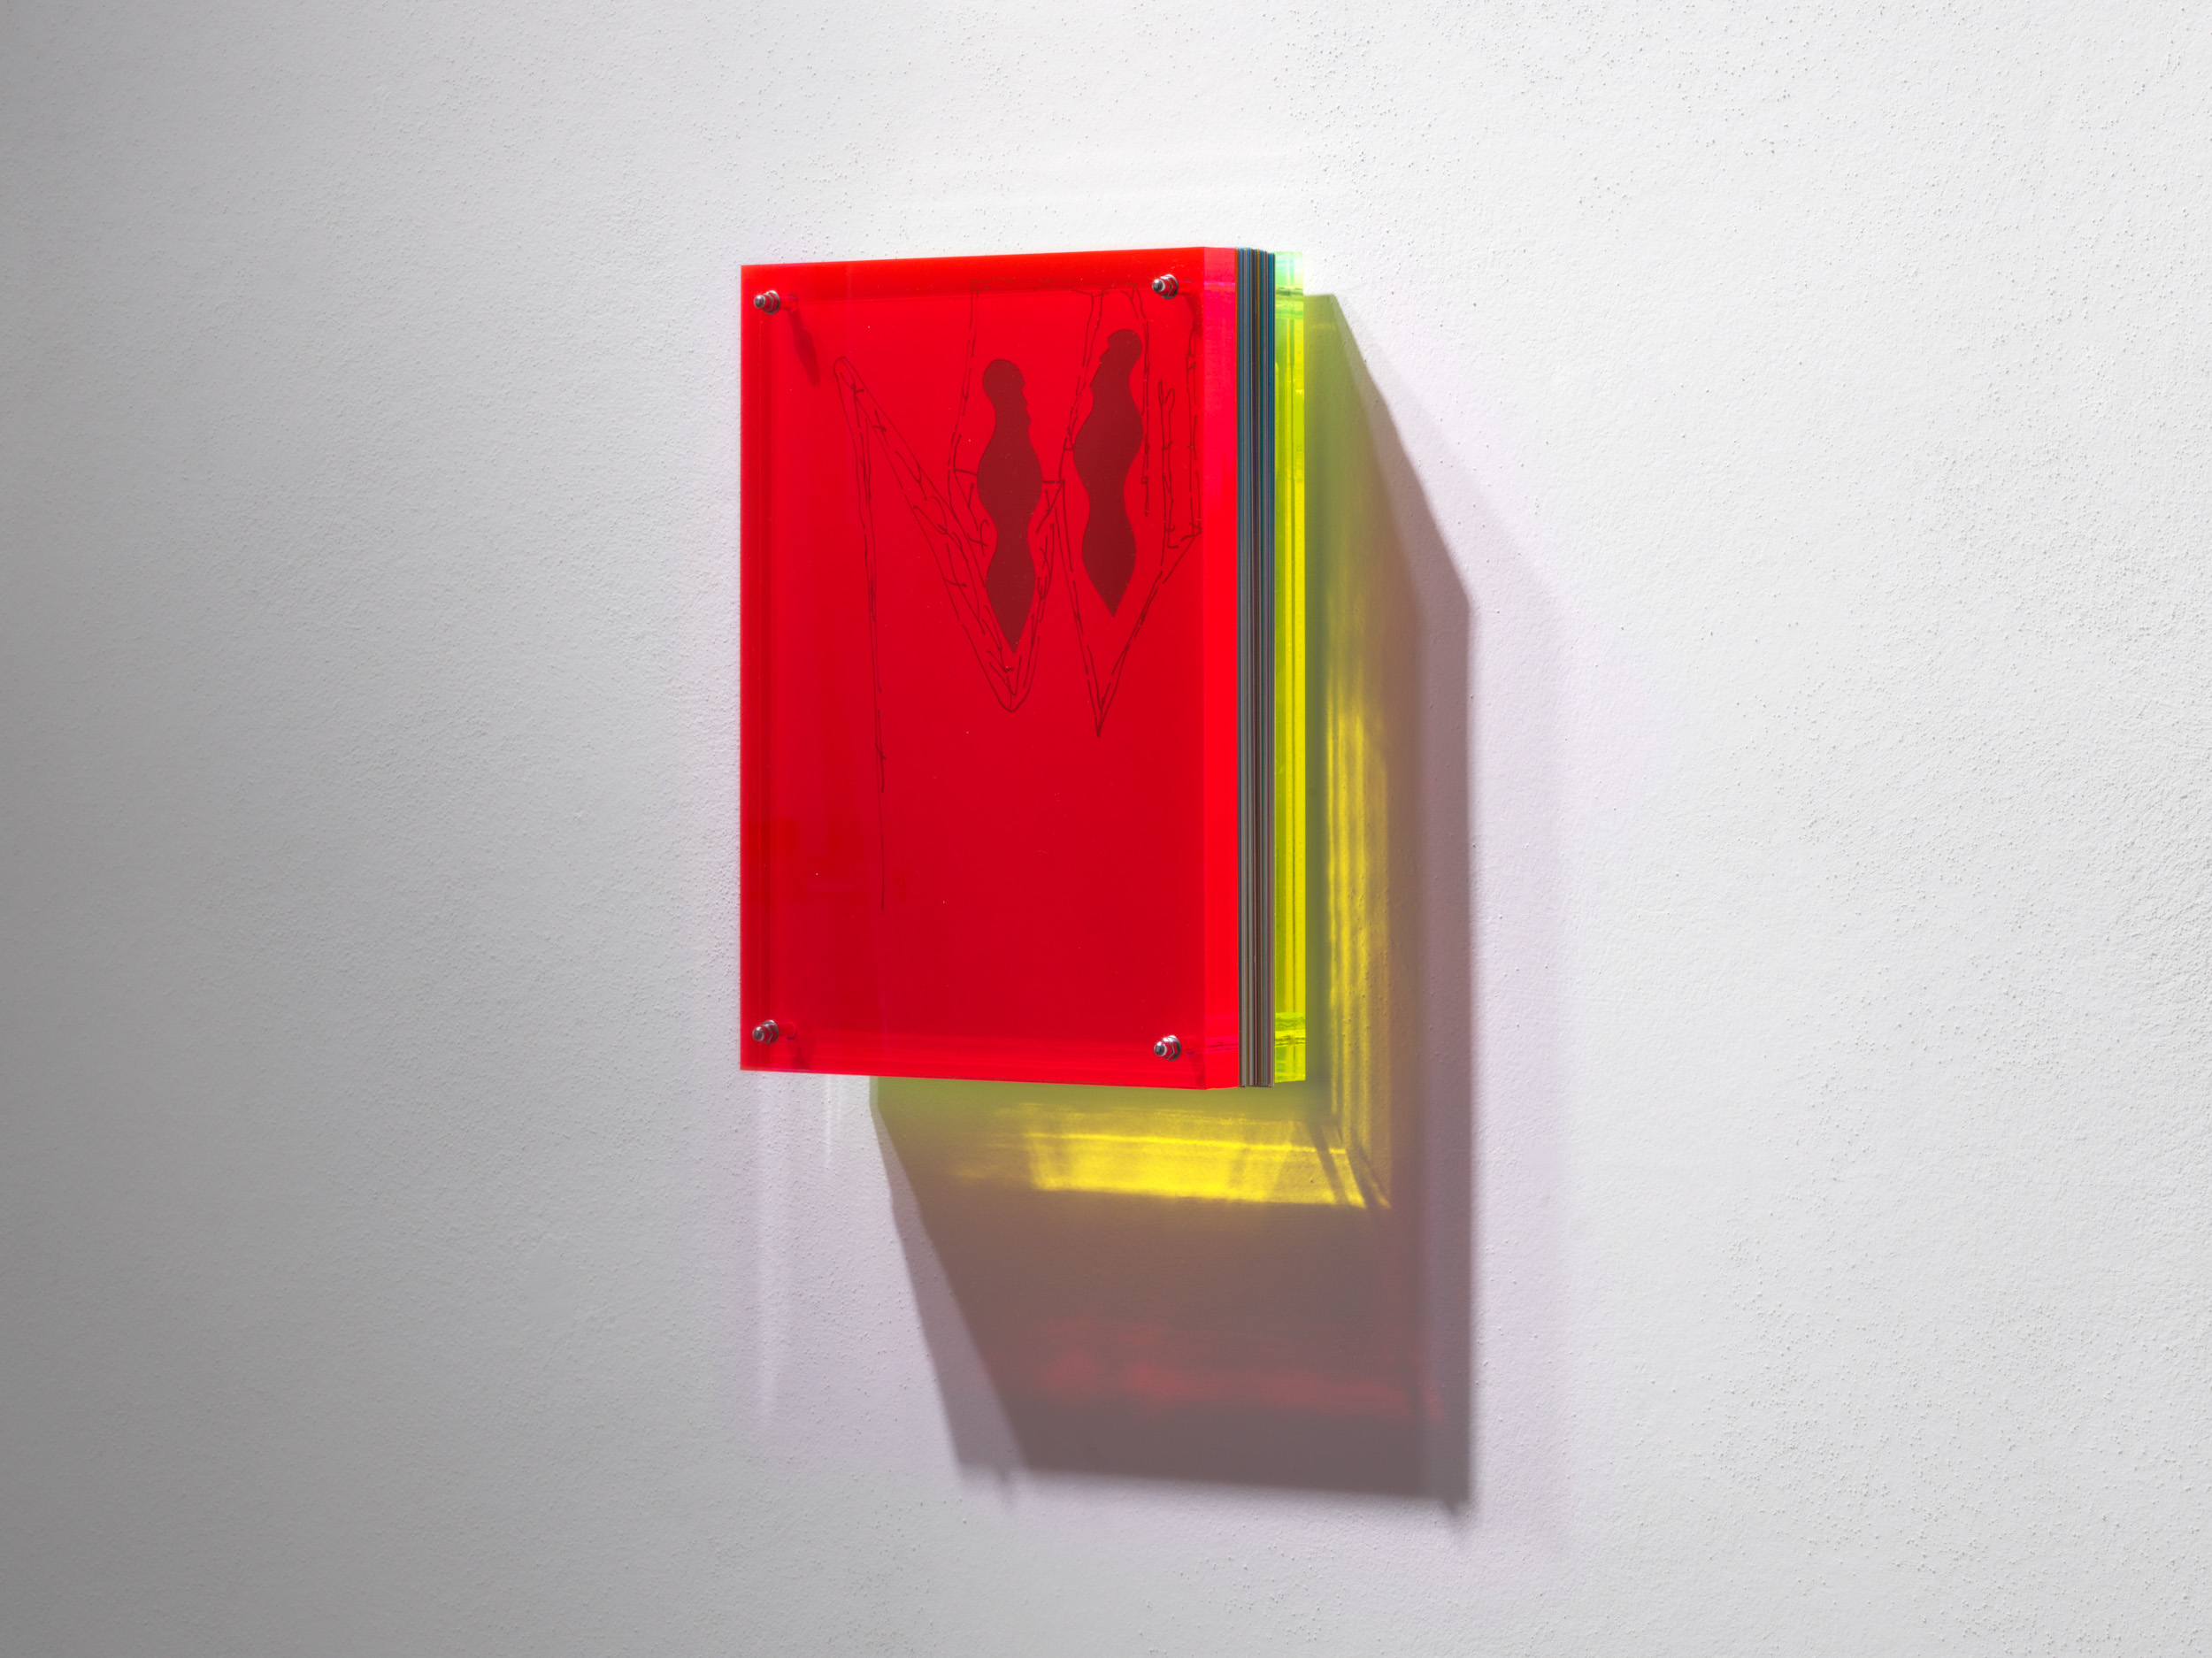 Installation view by Francesco Candeloro, Linee del Tempo, 2016, 29,7 x 21 x 6 cm closed, decoupage and felt-tip pen on paper acetate and plexiglass